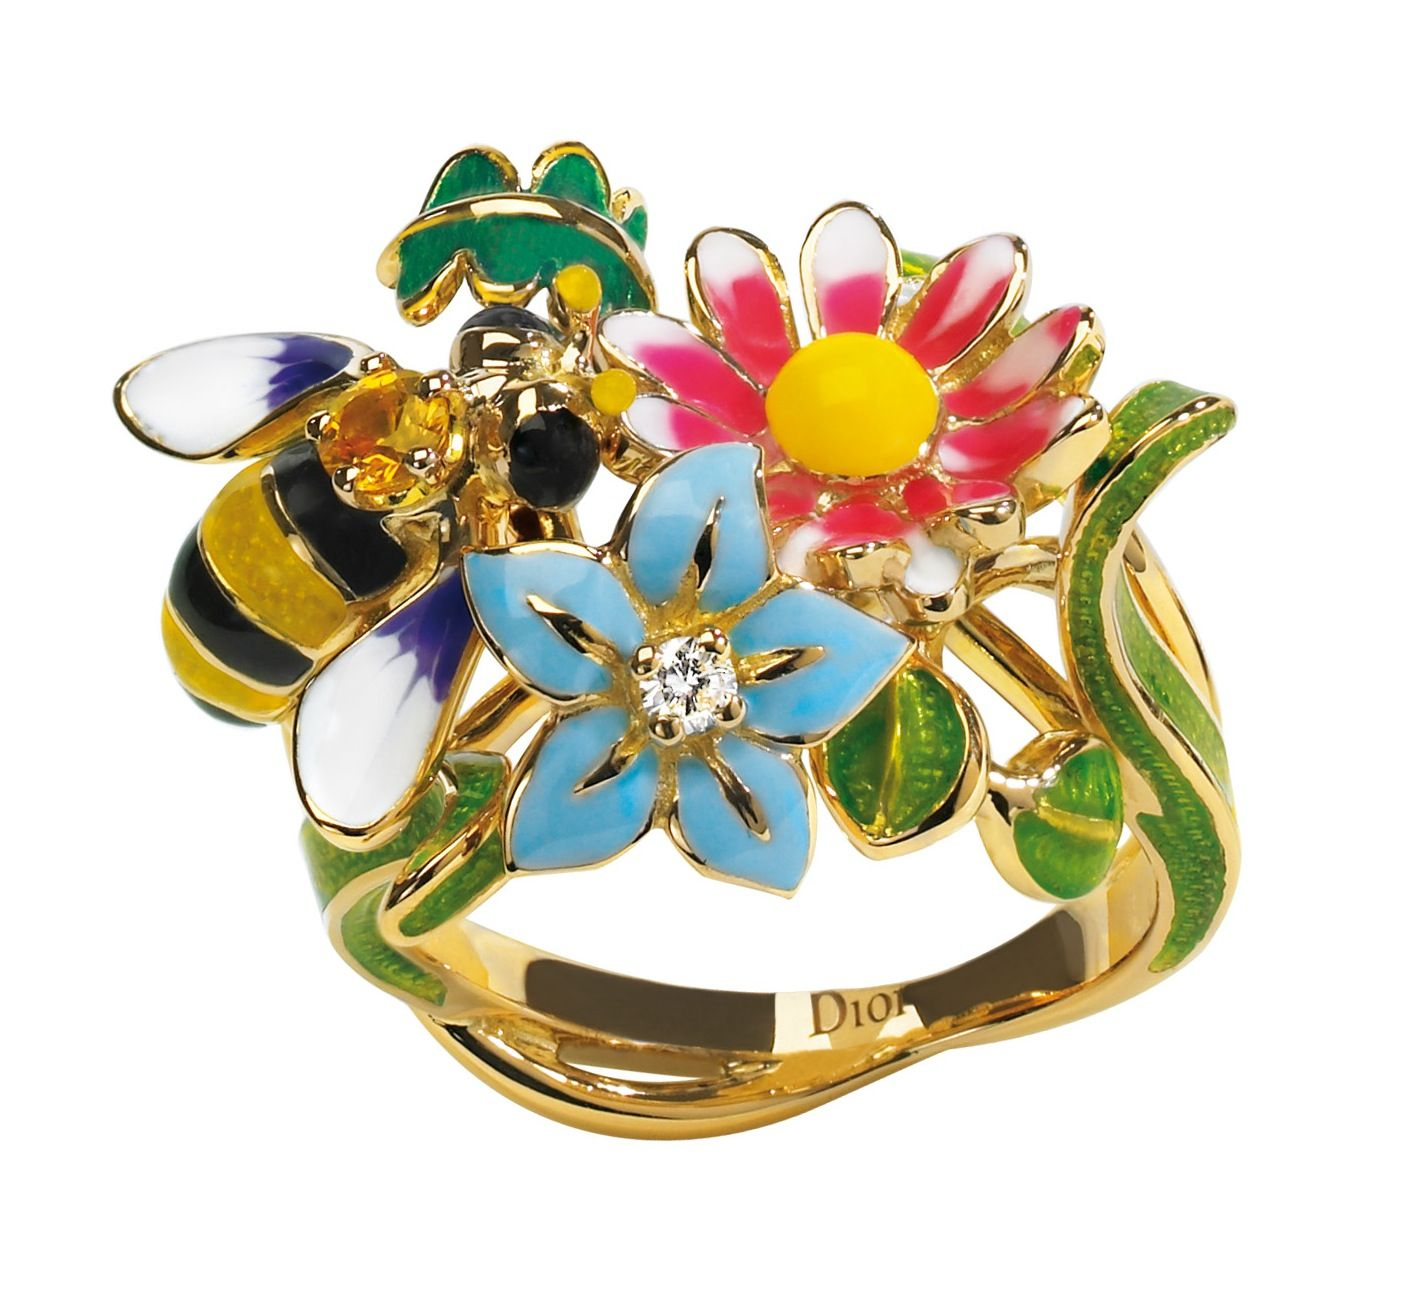 Ring from the Dior Joallerie collection...Fabulous!